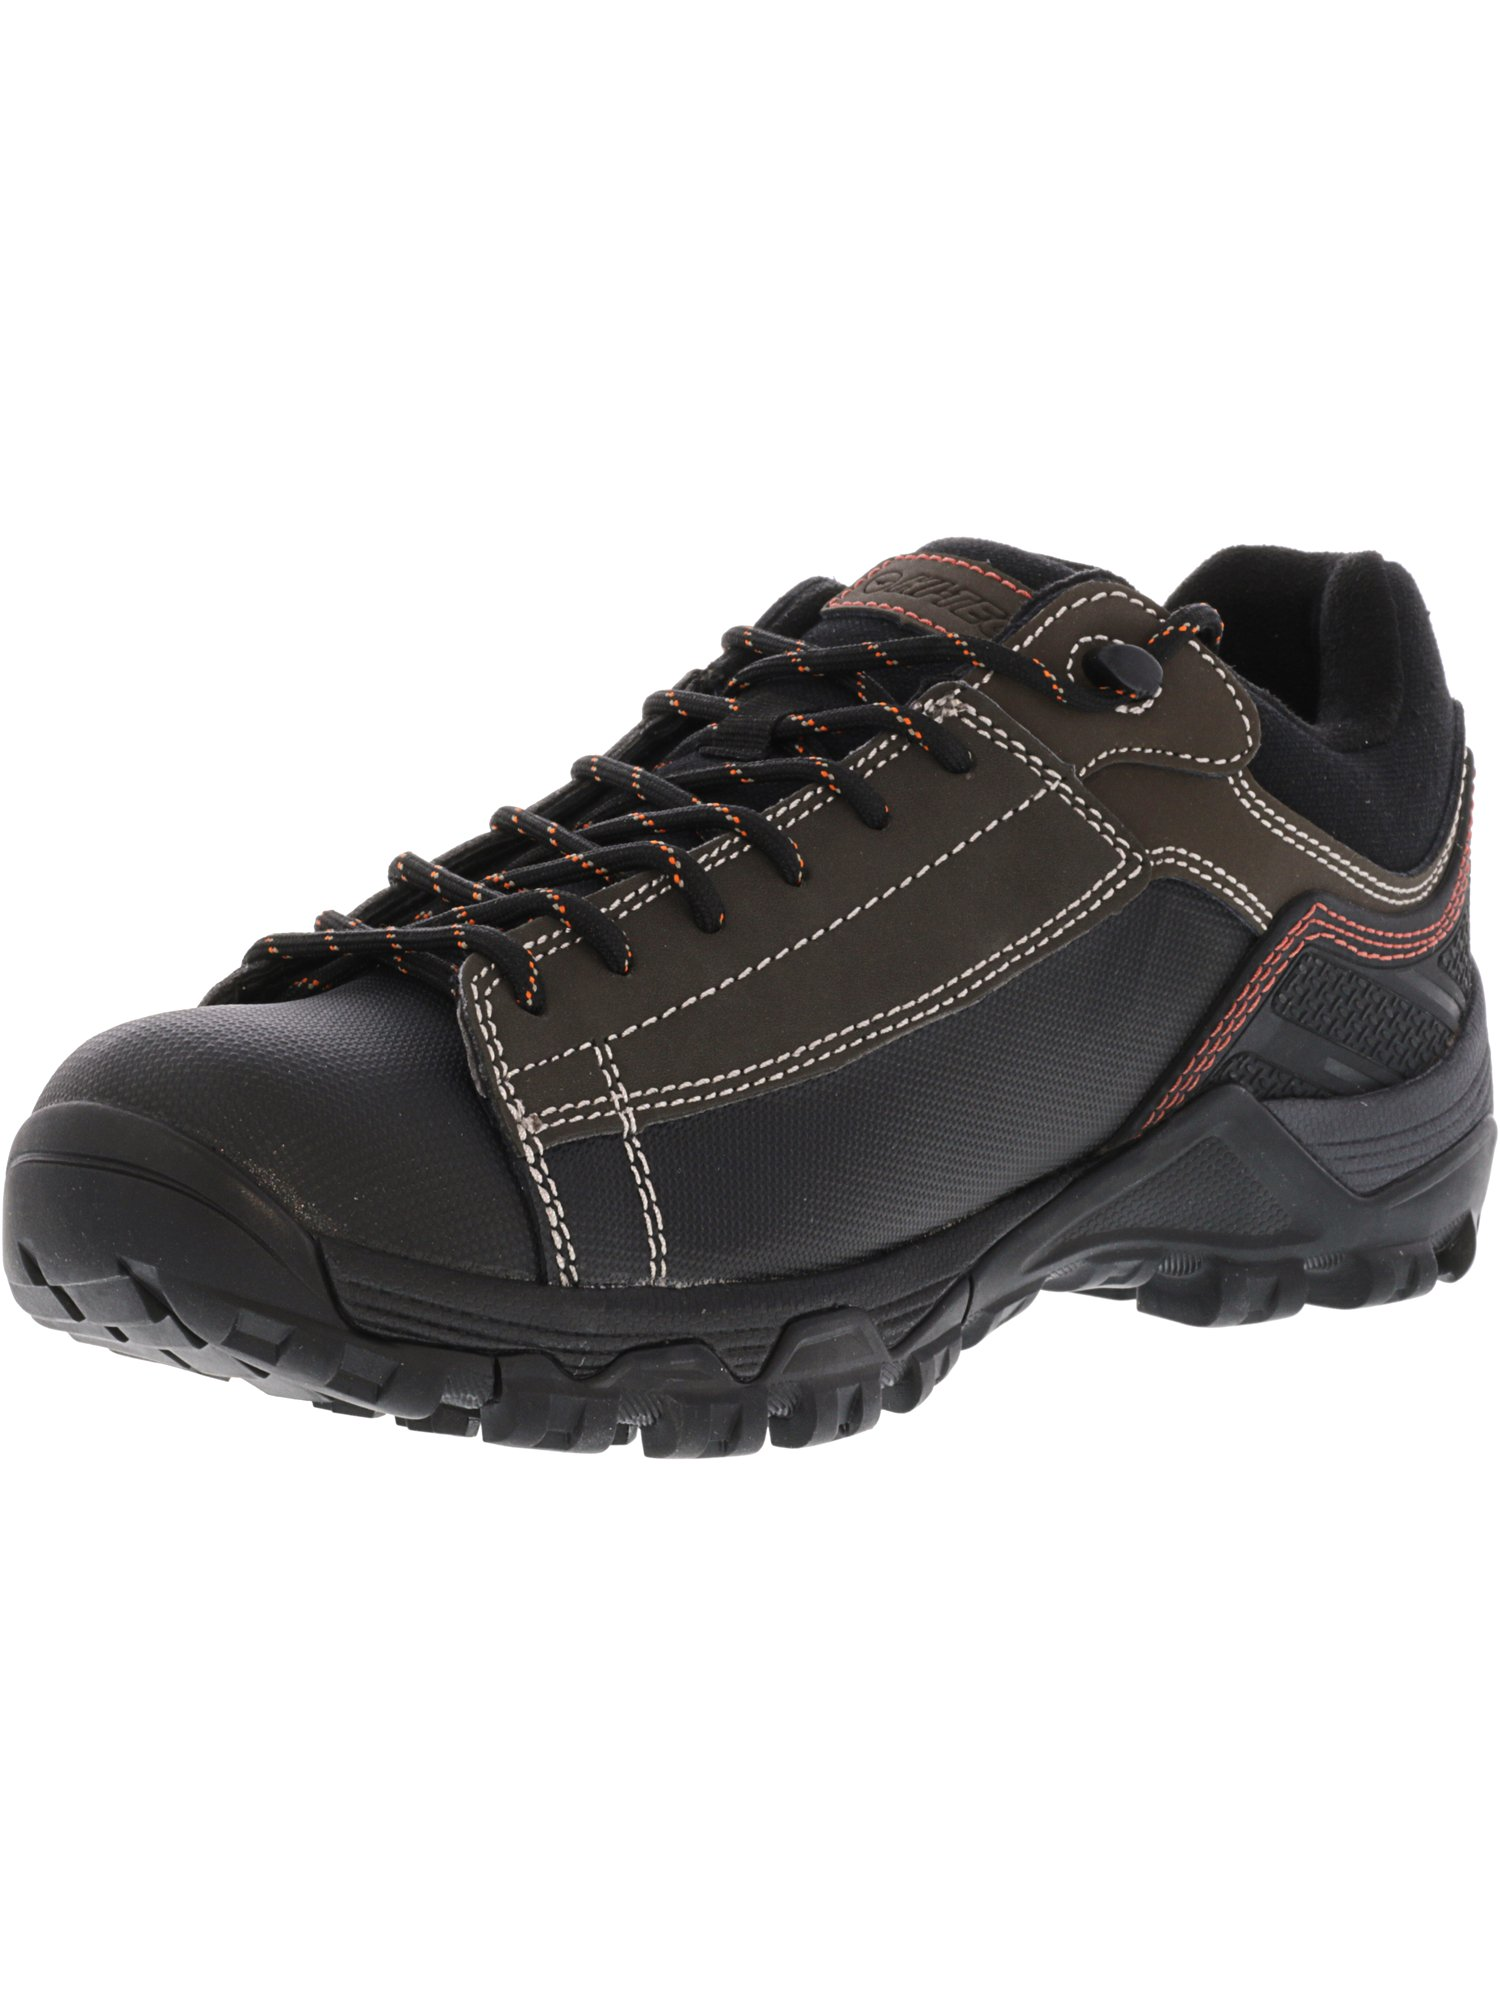 Hi-Tec Men's Trail Ox Low I Waterproof Chocolate   Burnt Orange Ankle-High Leather Hunting Shoe 8M by Hi-Tec